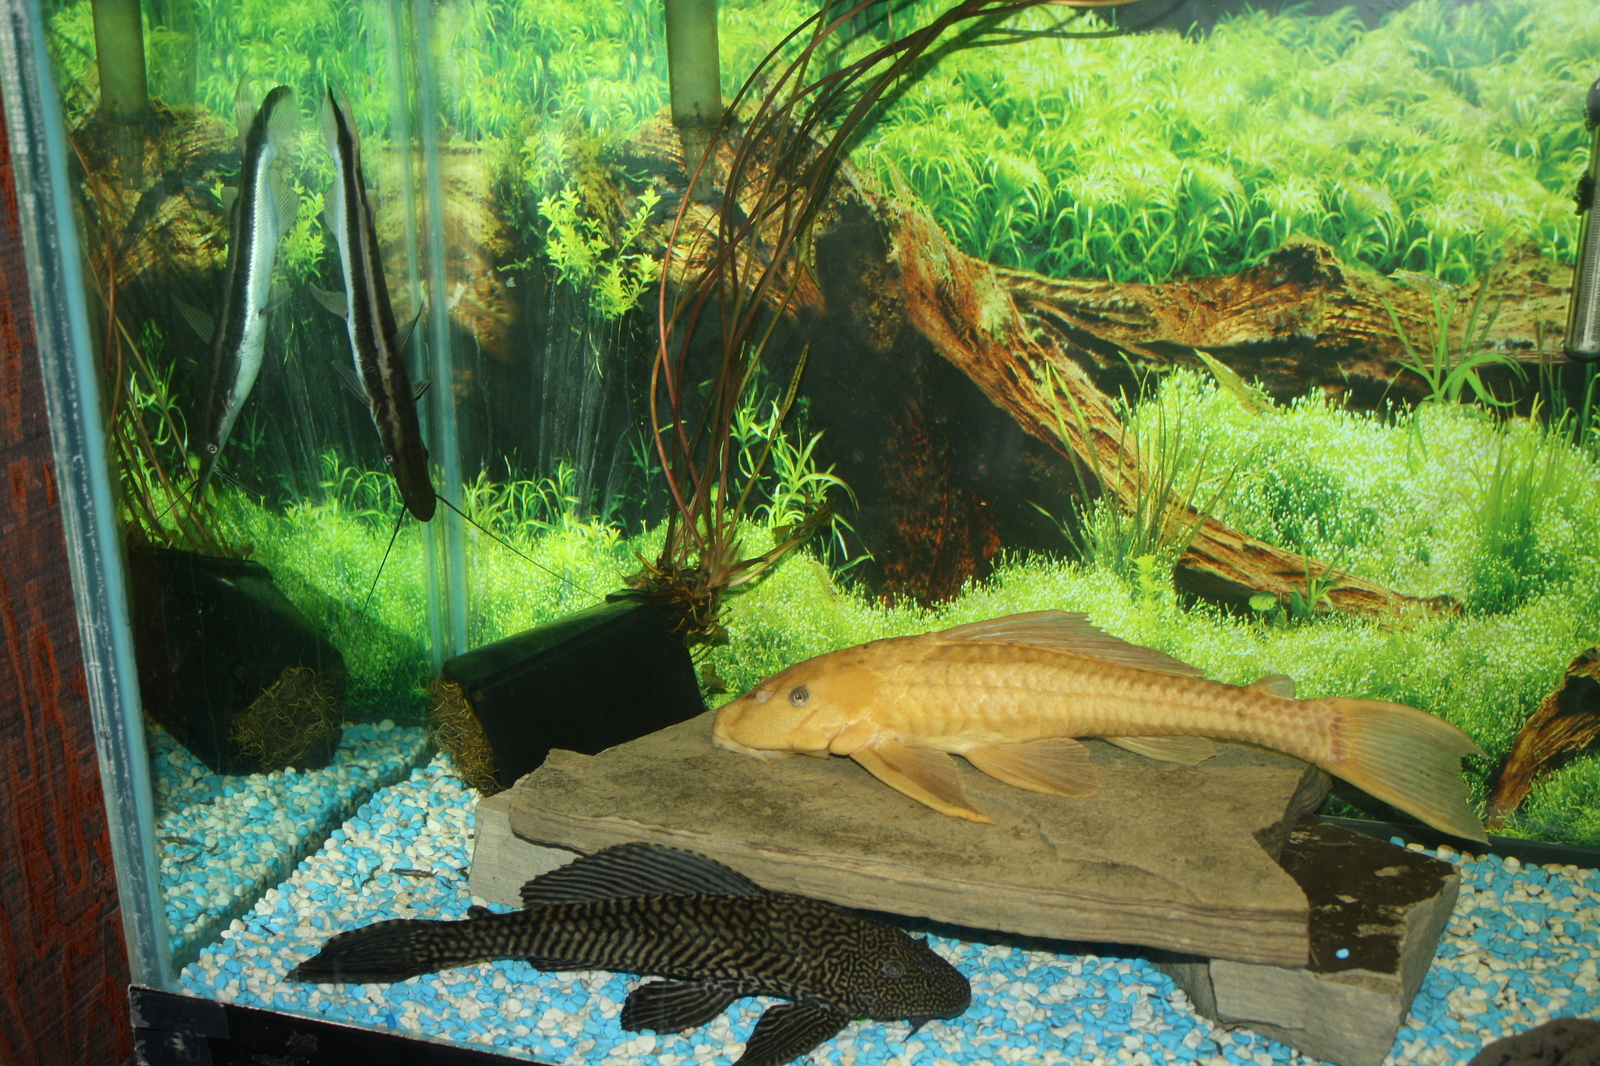 pleco's and lima shovelnose catfish | by Gasper Pantaleo